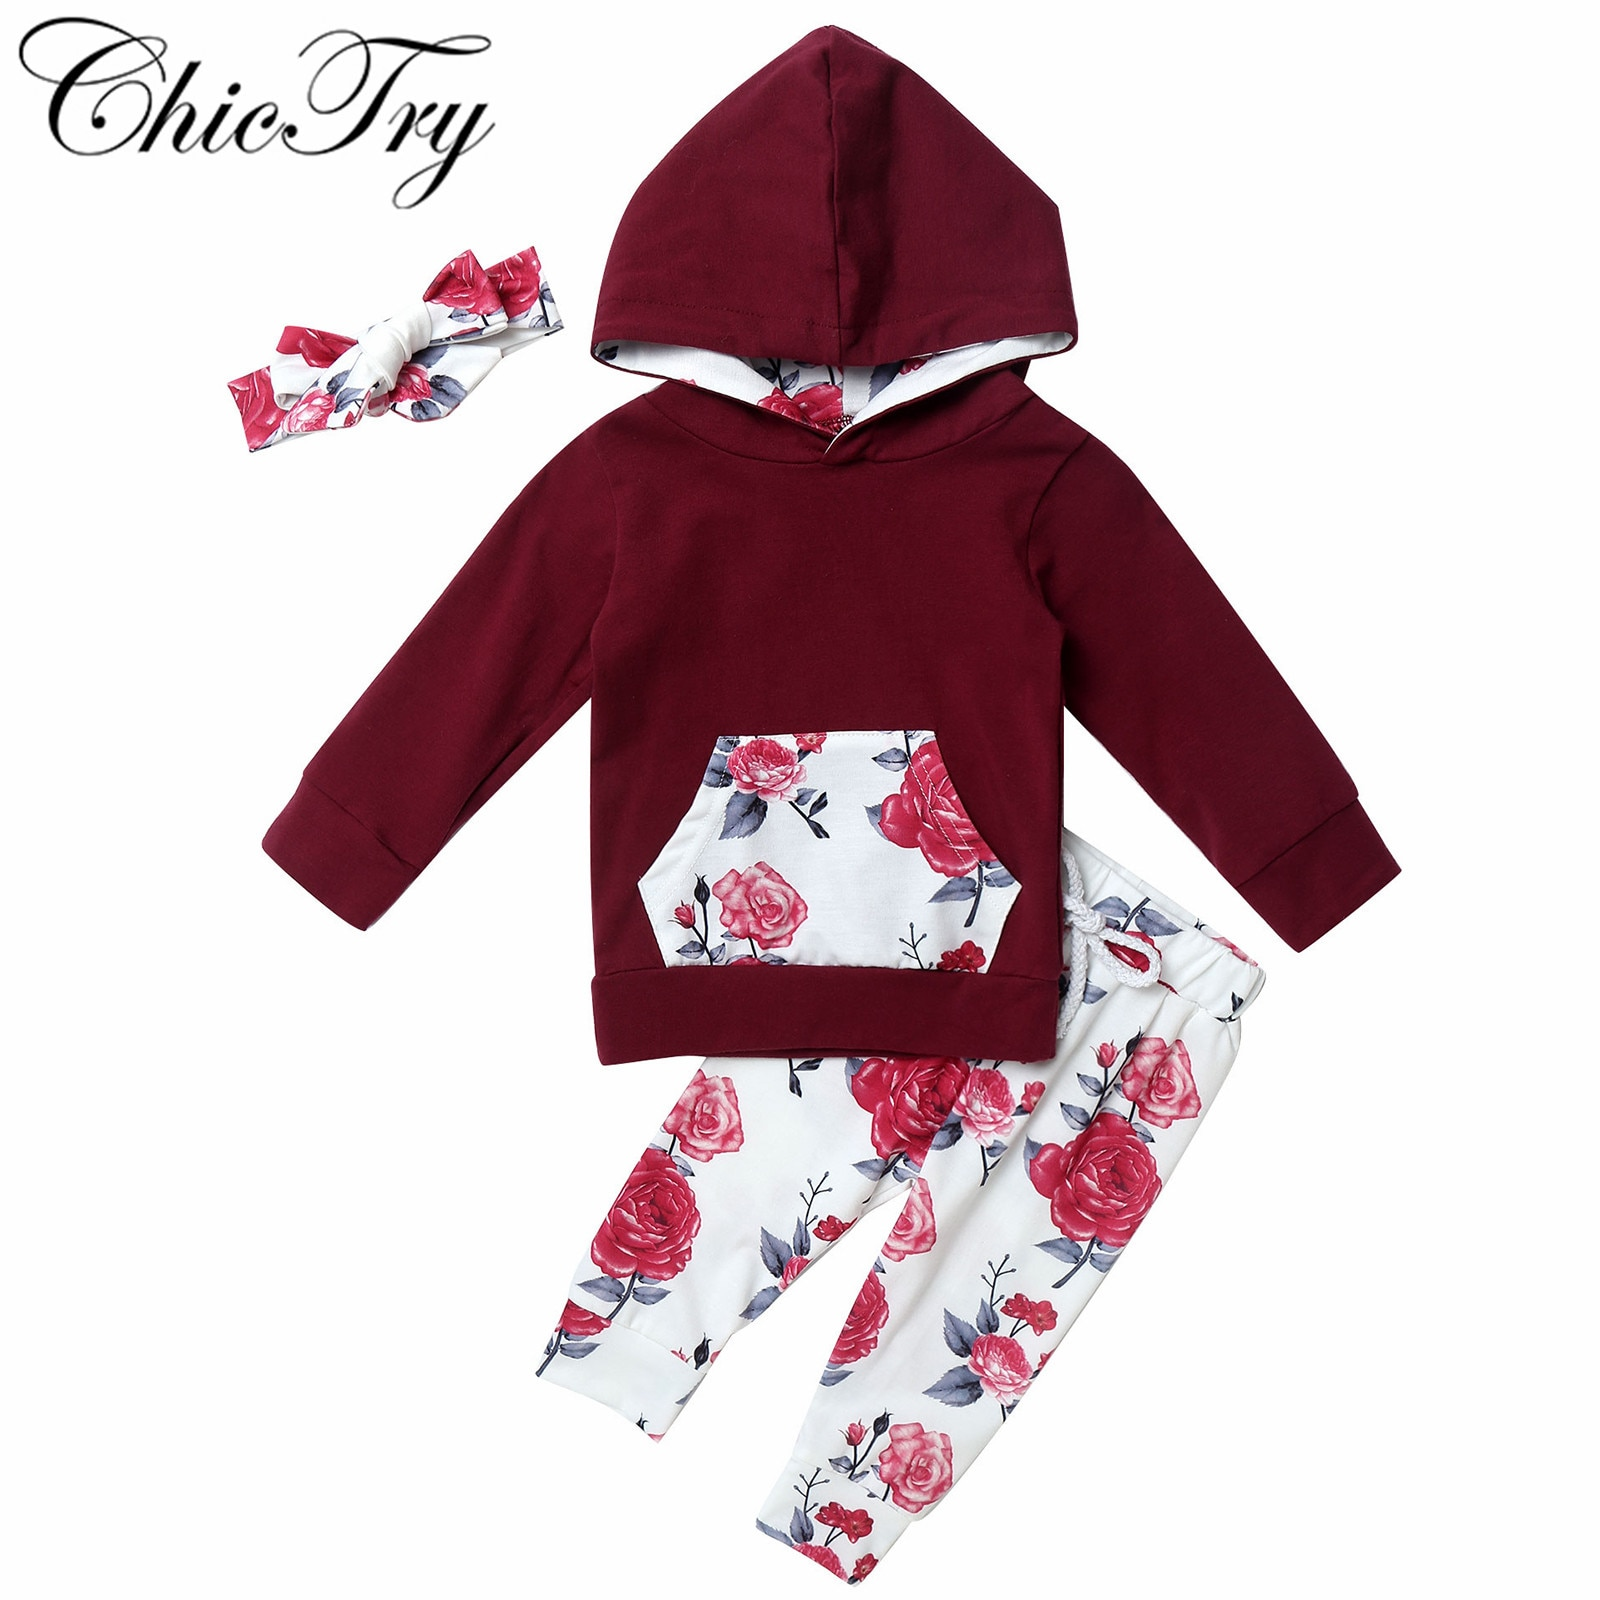 Baby Girls Outfits Toddler Kids Baby Girl Tops Floral Print Rompers Pants Clothes Sets ropa de baby